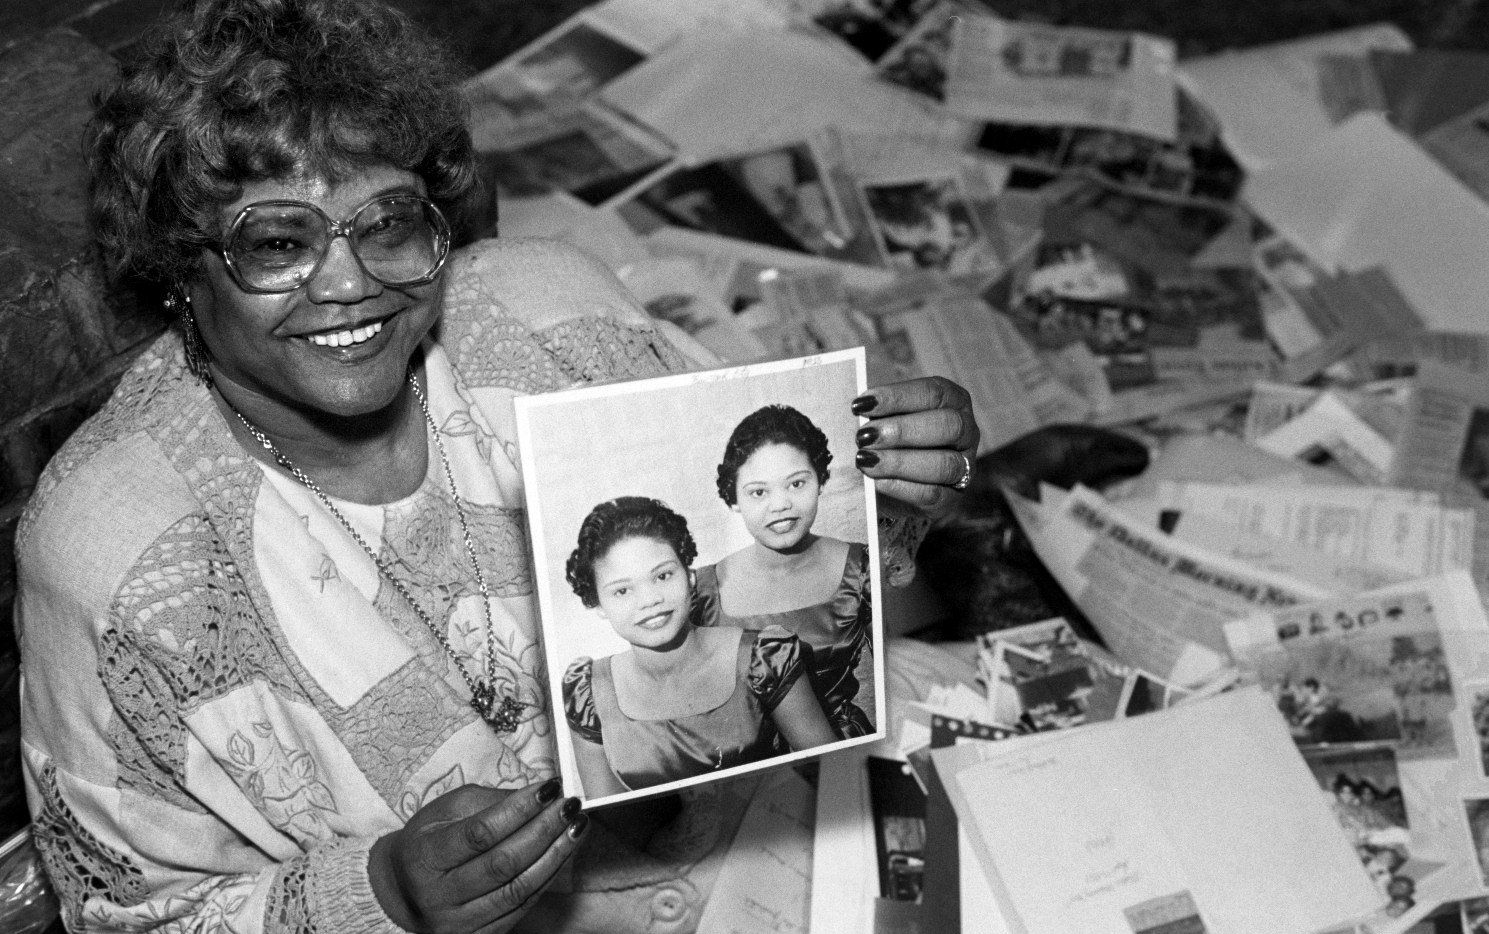 In this 1994 photo, Ina Bell Daniels McGee holds a picture from 1956 of her and her twin sister, Nina. Surrounding her is a trunk full of memorabilia from their life together.